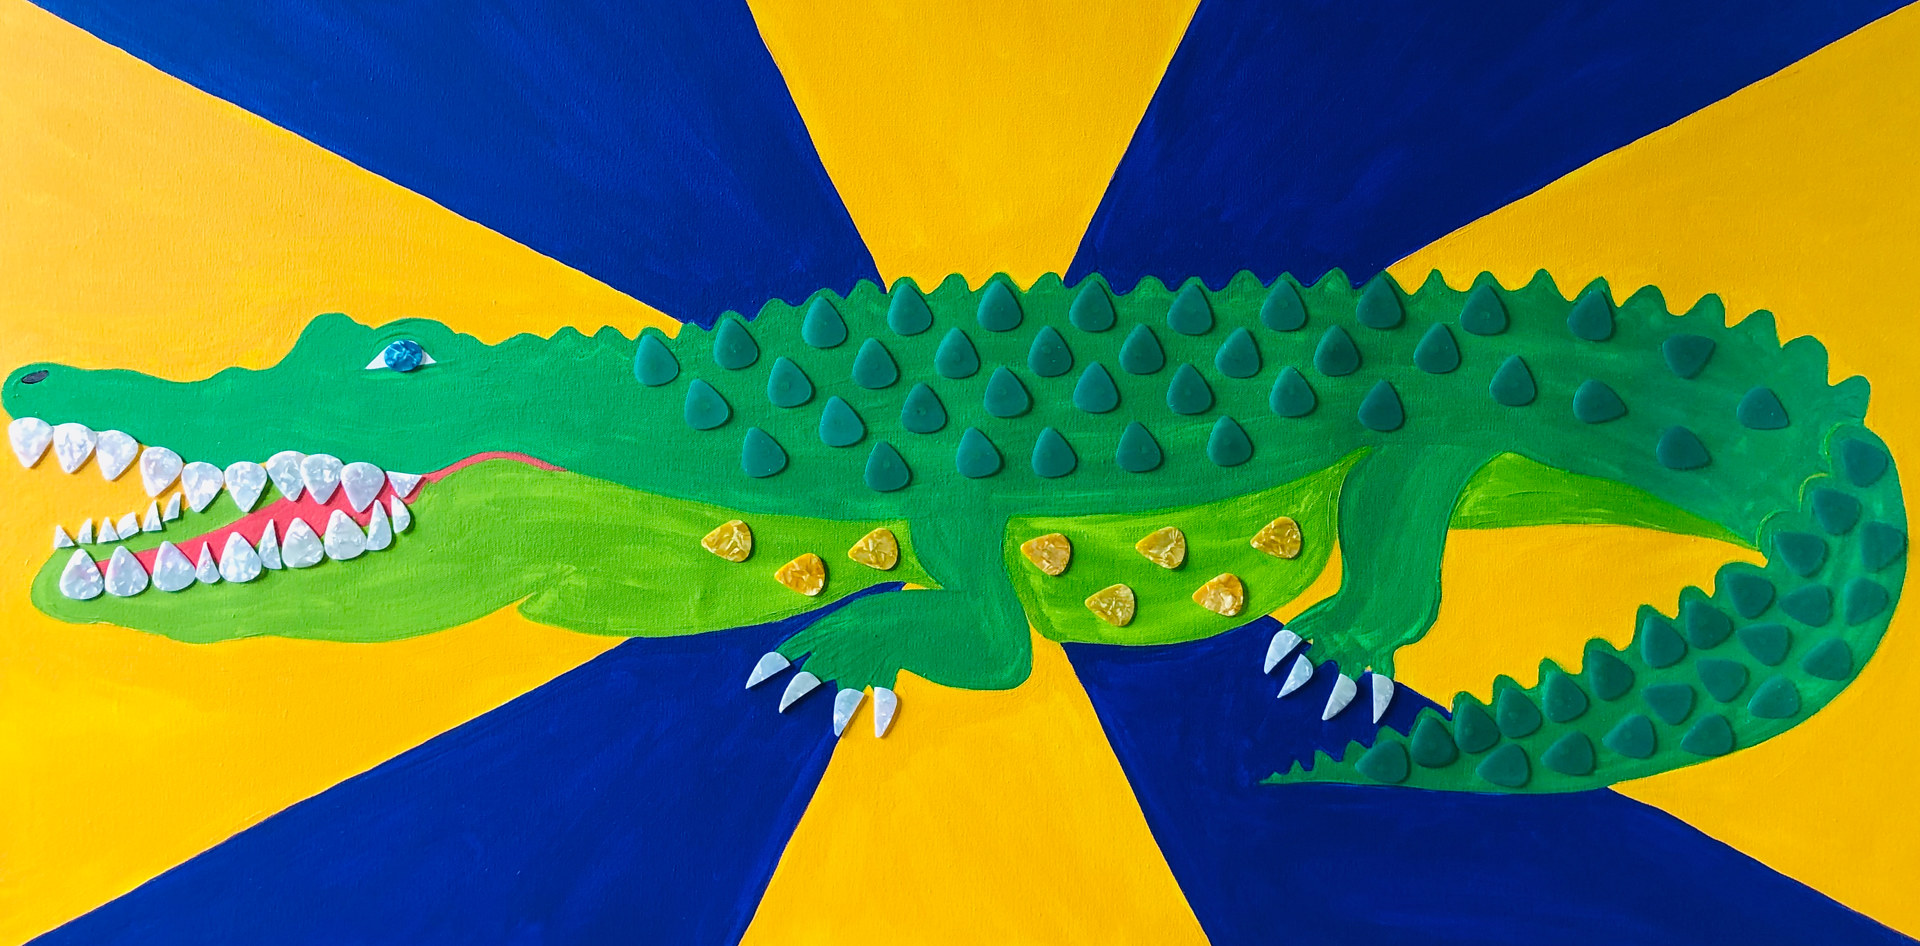 Doing the Alligator by Kelly Schafer